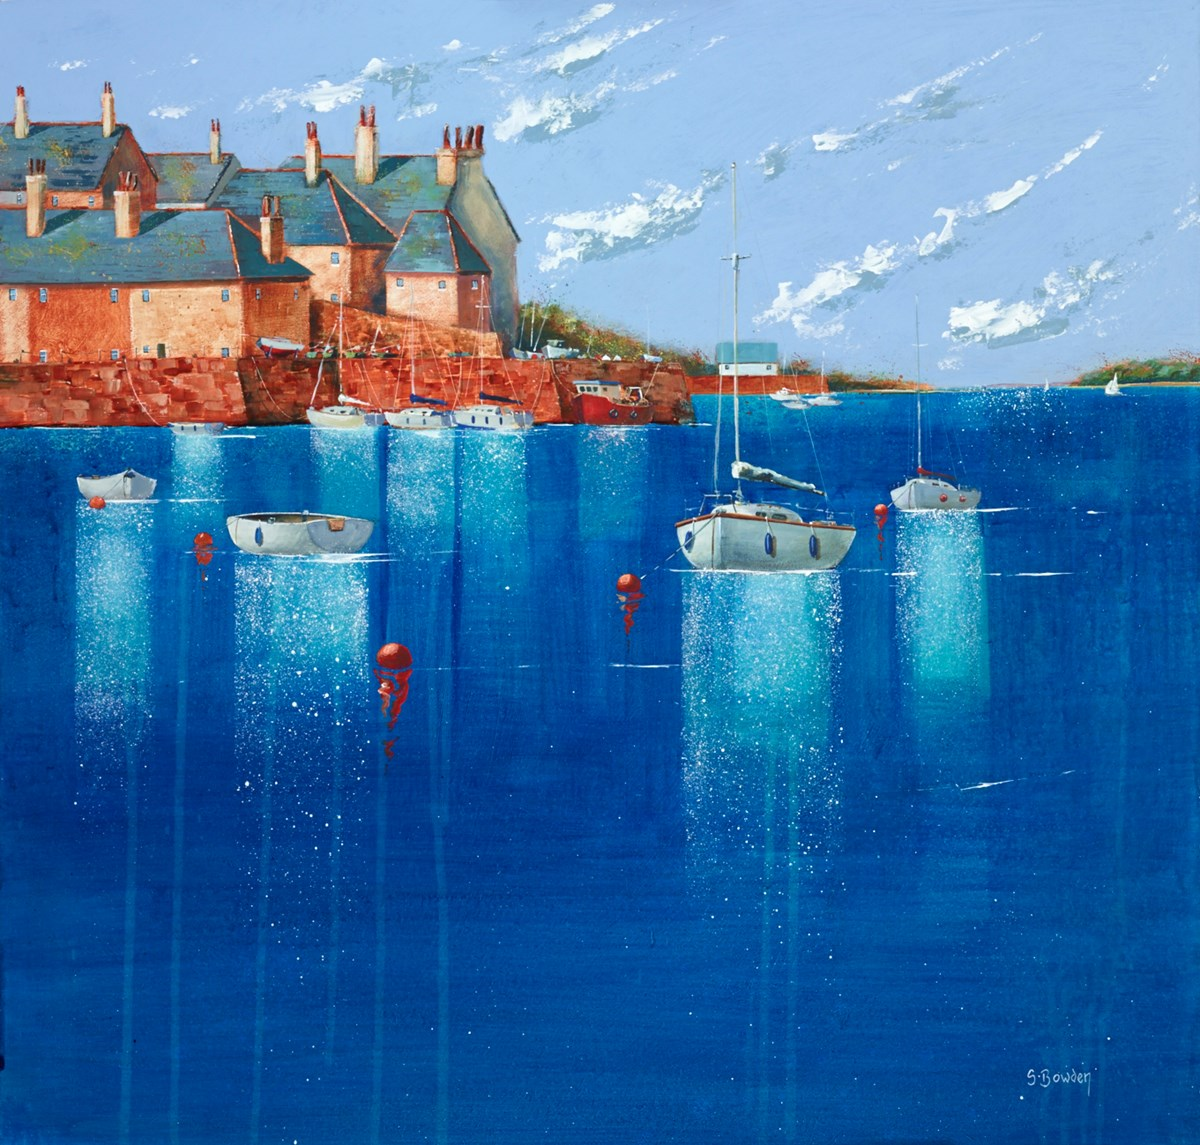 Onshore Breeze  by steve bowden - Original on Board sized 24x24 inches. Available from Whitewall Galleries